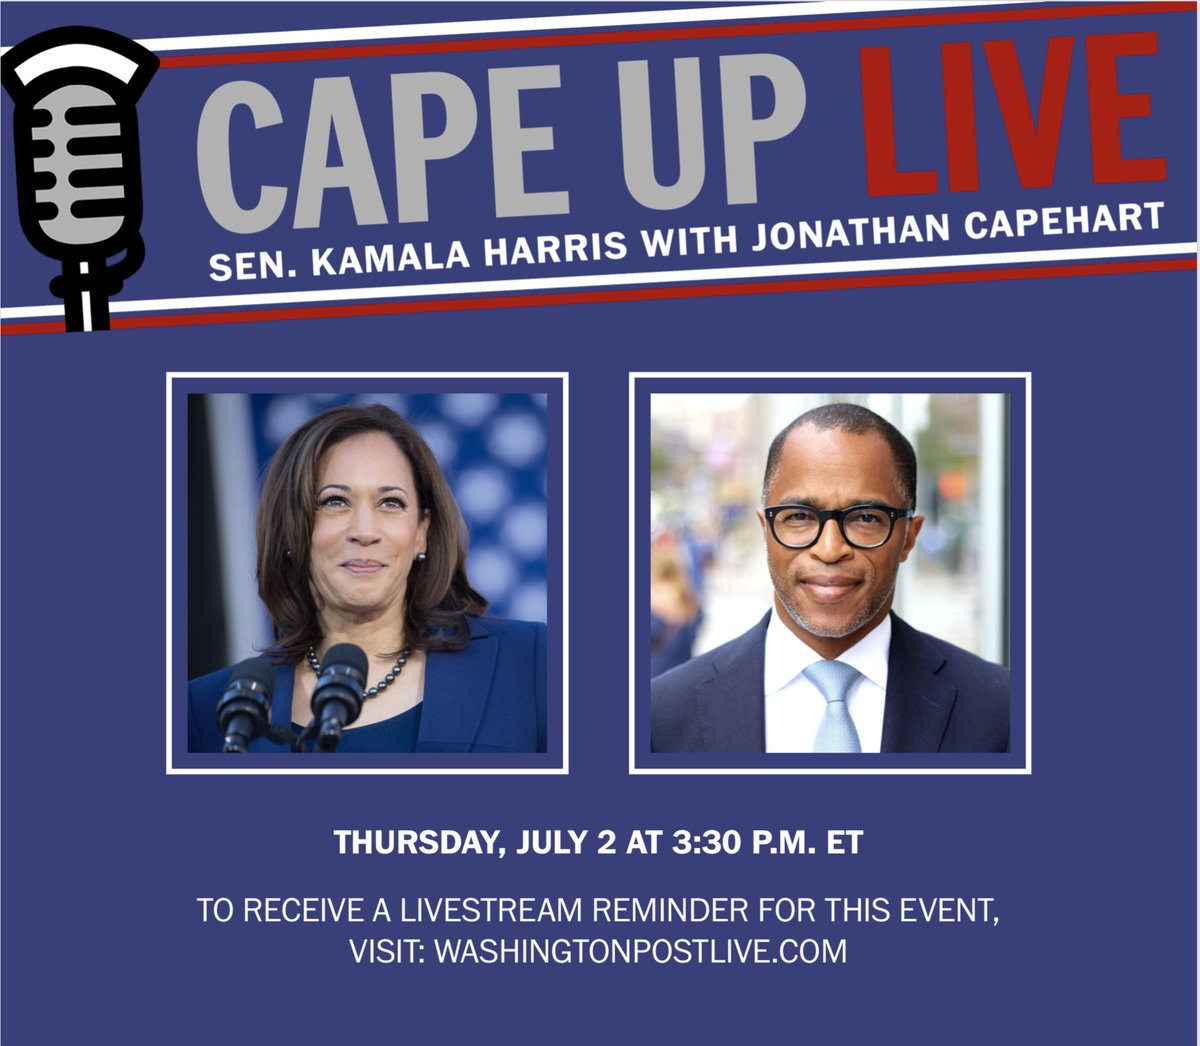 .@KamalaHarris joins @CapehartJ today at 3:30 PM, tune in! https://t.co/YdXNK6DhfX